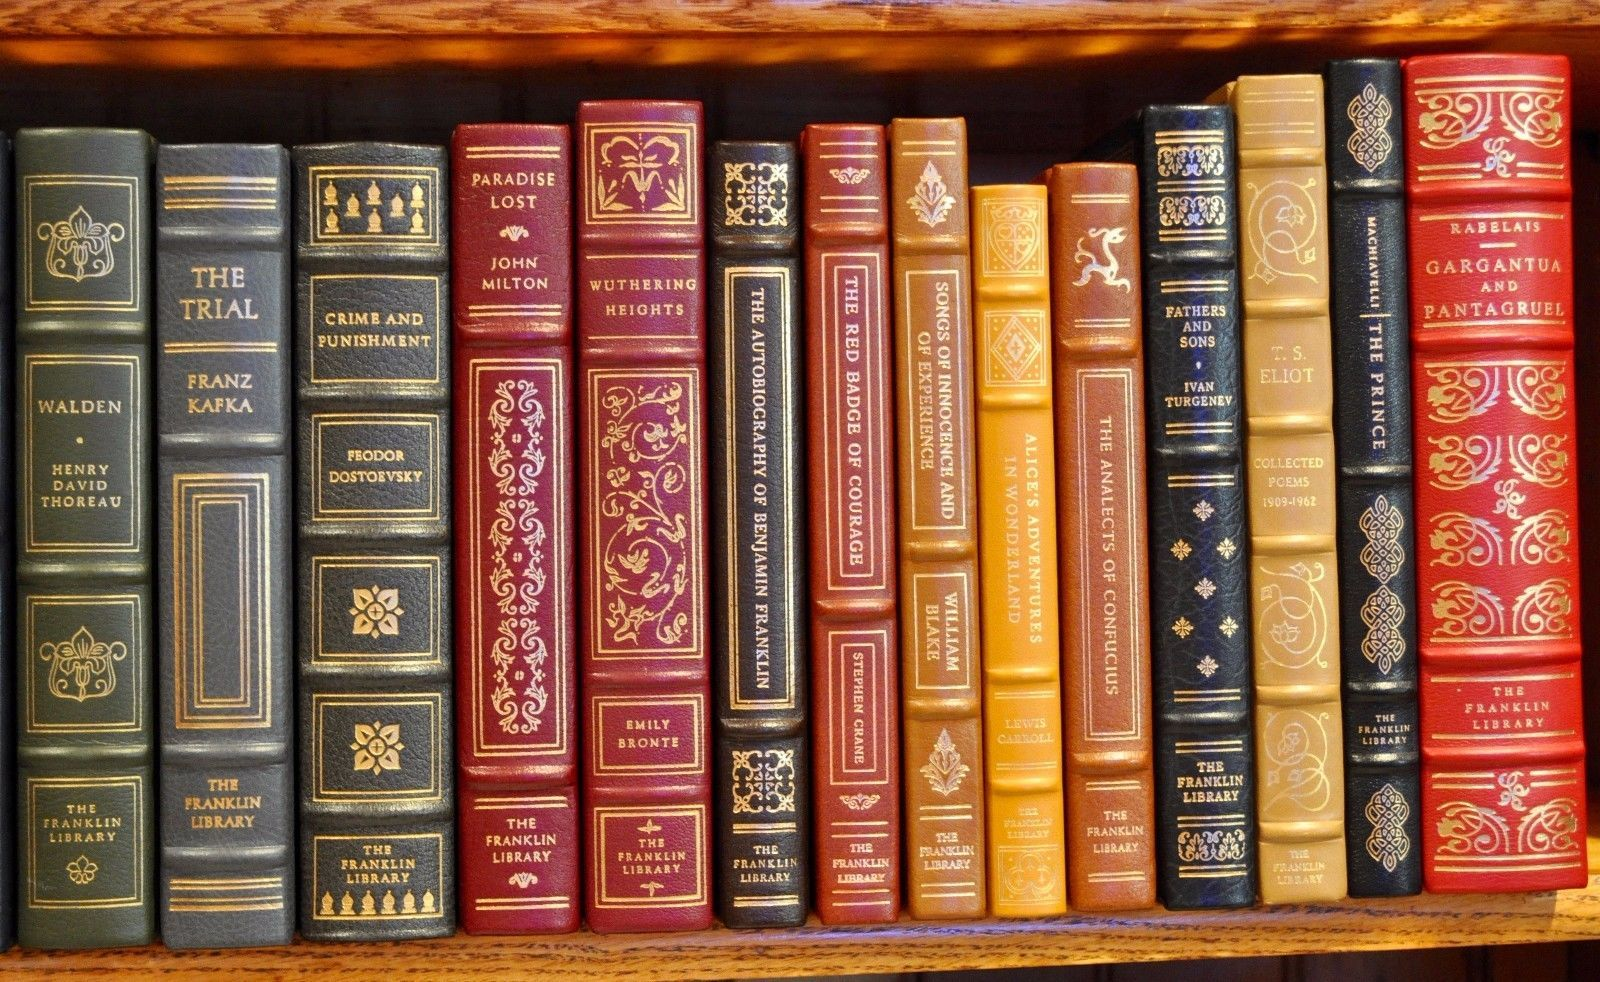 Franklin Library 100 Greatest Books Of All Time Complete Set Fine Very Fine Ebay Classic Books Great Books Books